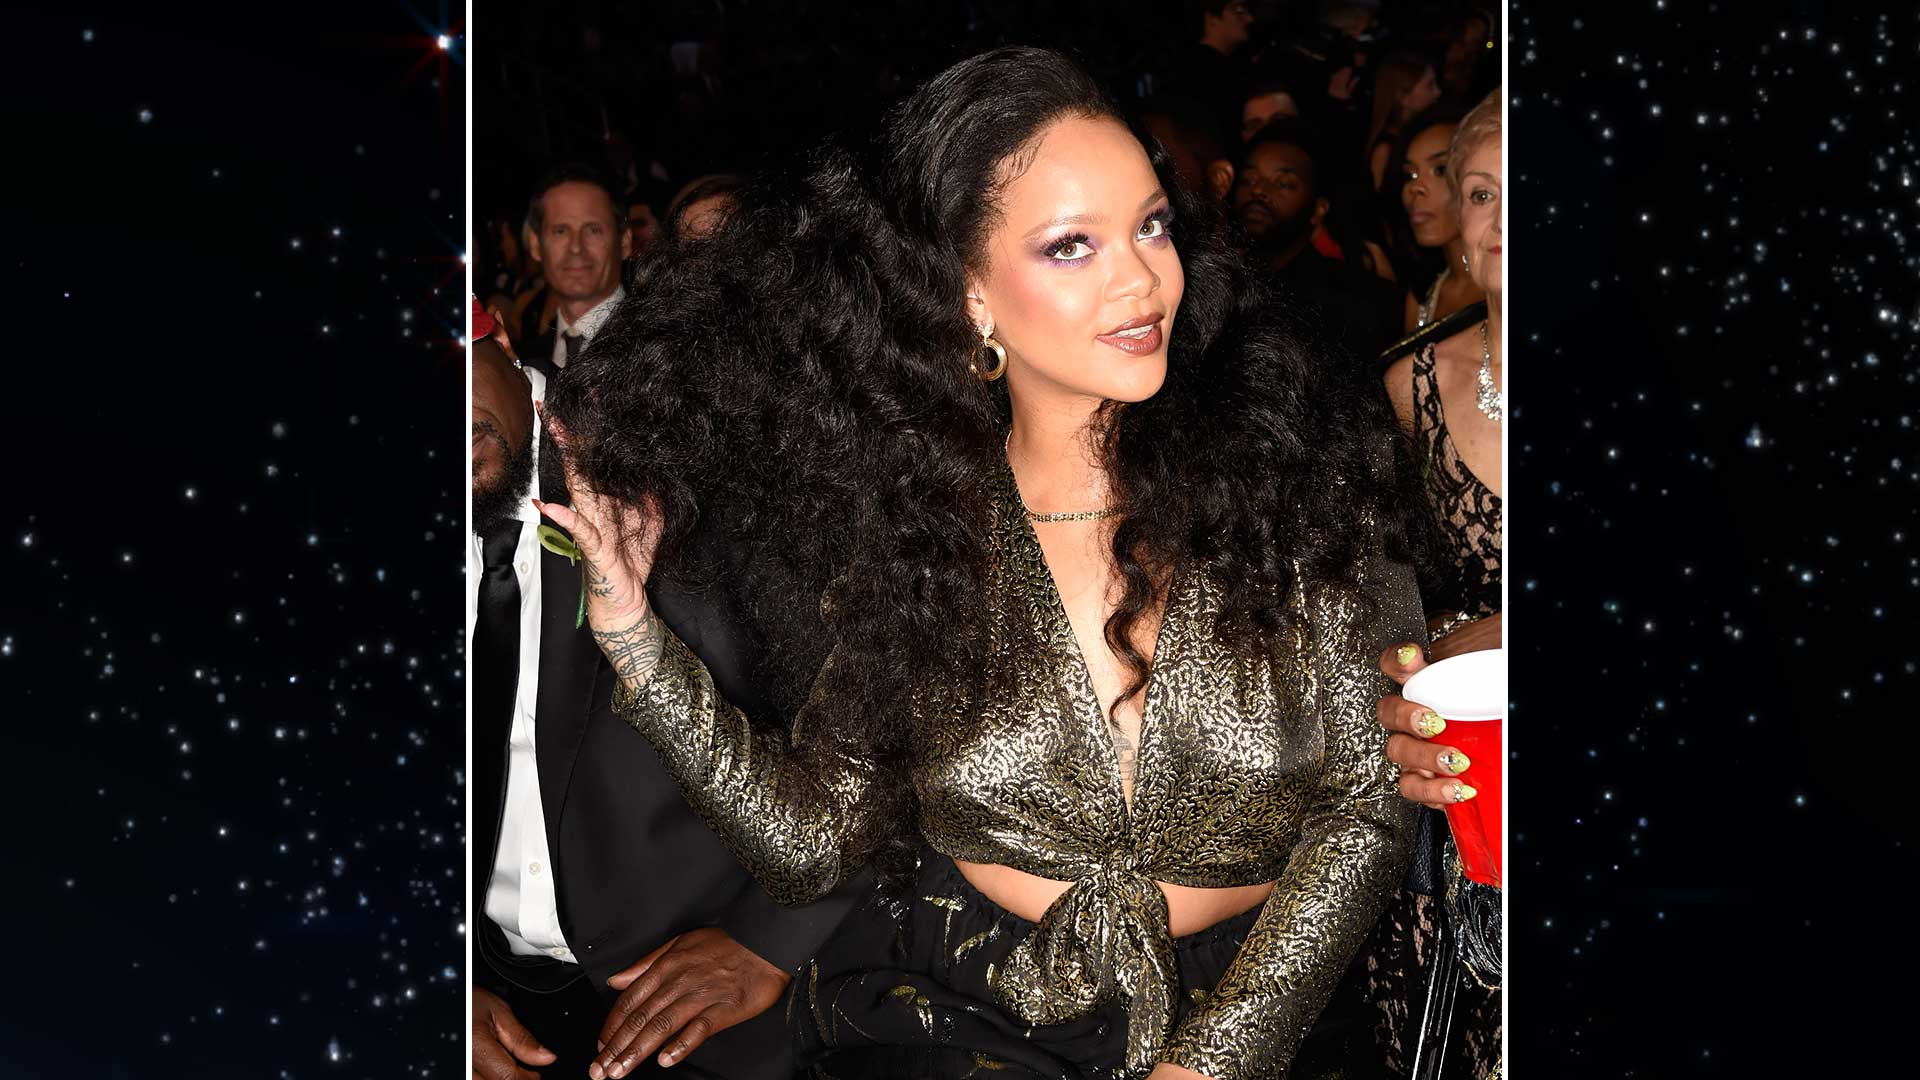 Rihanna offers a classy hair flip we almost certainly do not deserve.